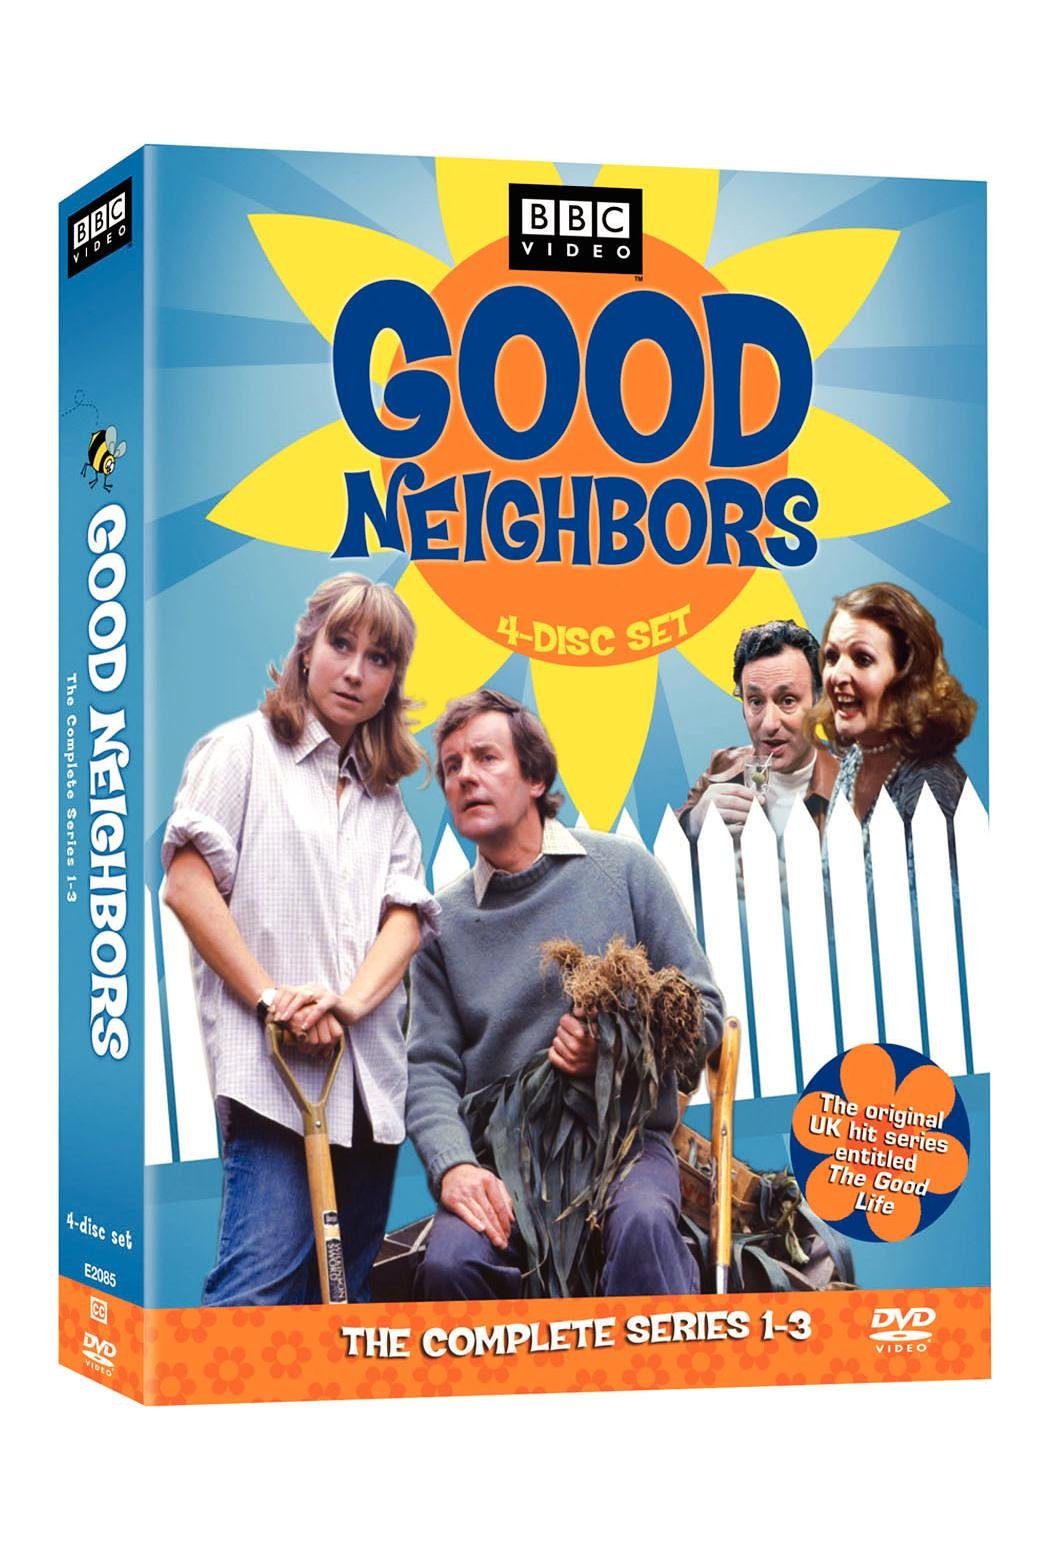 Good Neighbors: The Complete Series 1-3 by BBC Warner